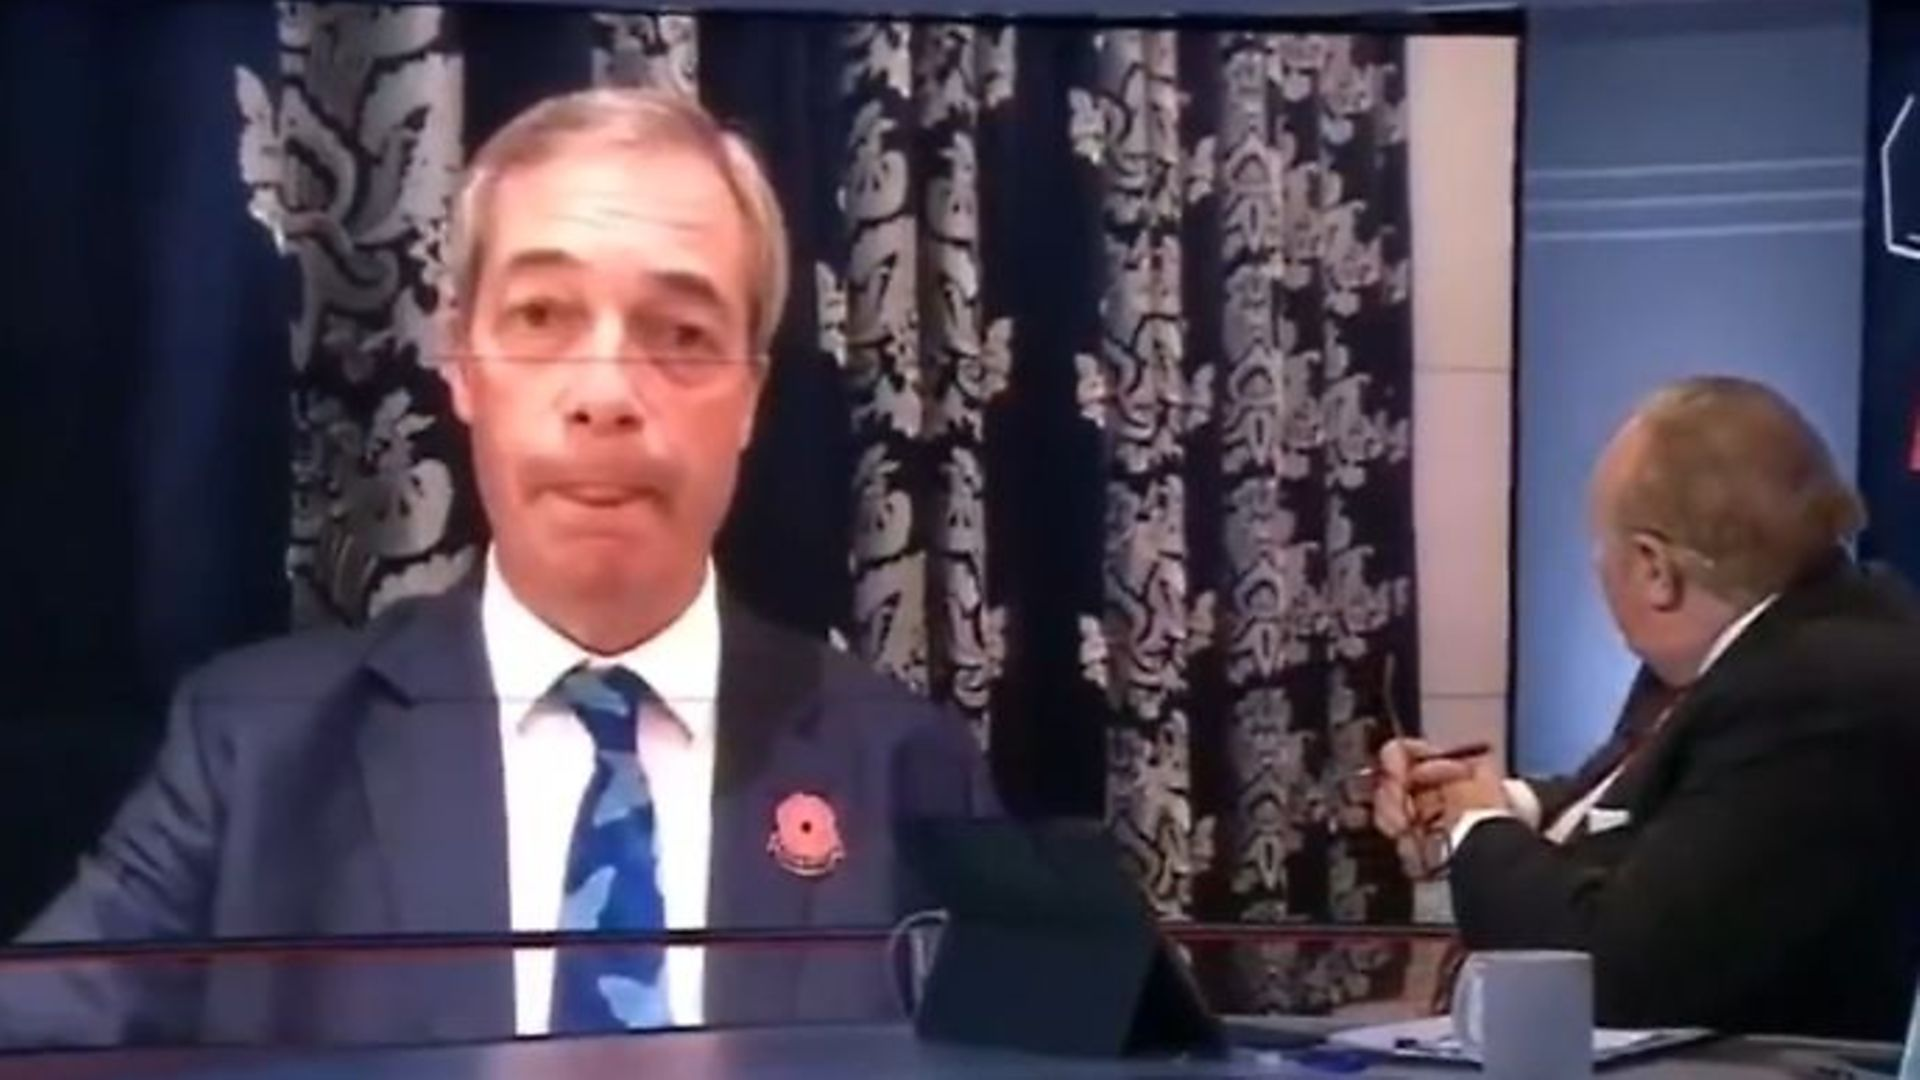 Brexit Party leader Nigel Farage on BBC News - Credit: Twitter